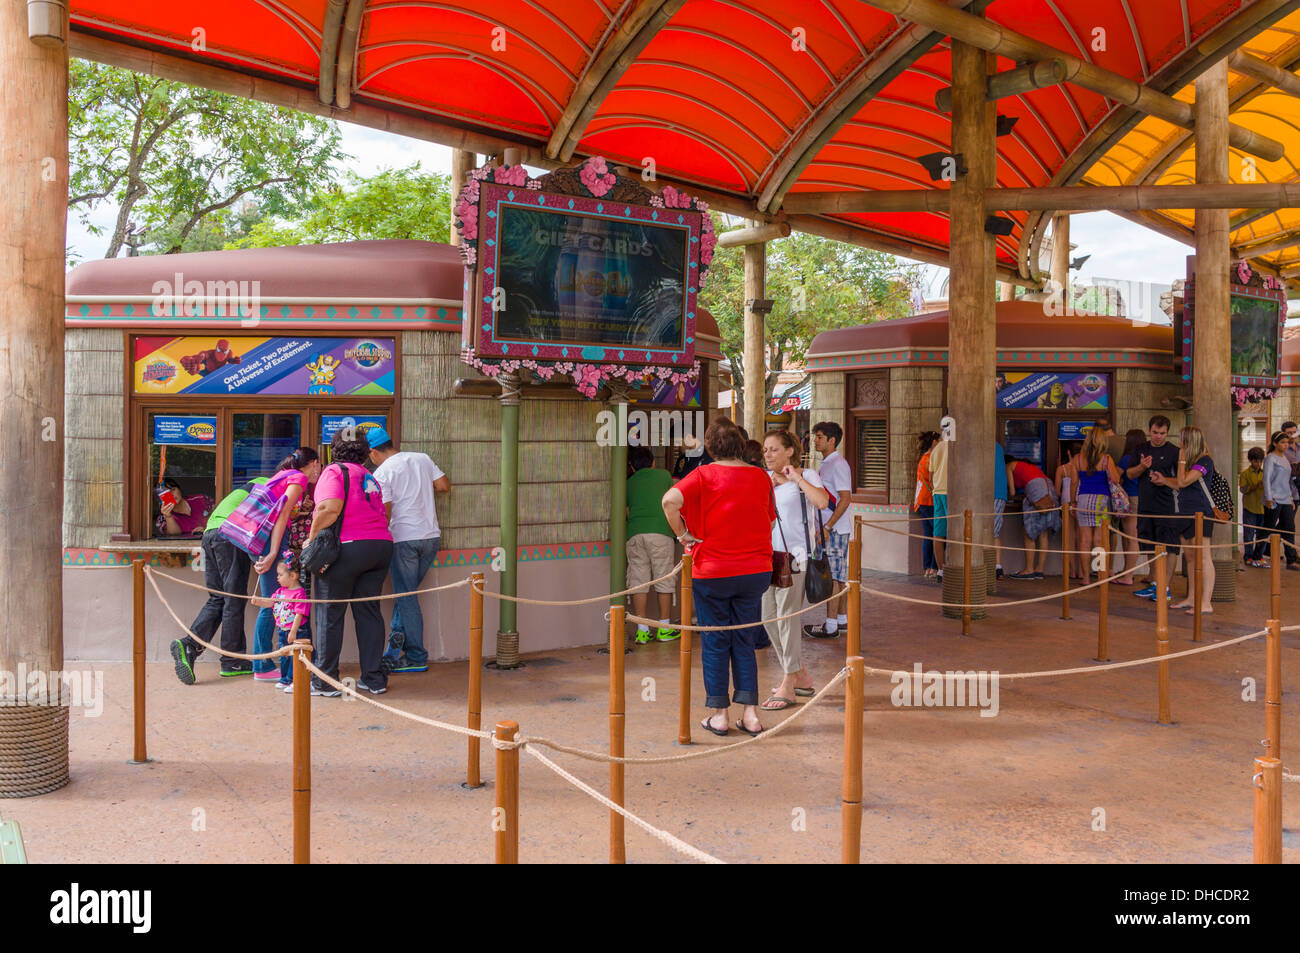 Ticket booths at Islands of Adventure, Universal Orlando Resort, Orlando, Central Florida, USA - Stock Image